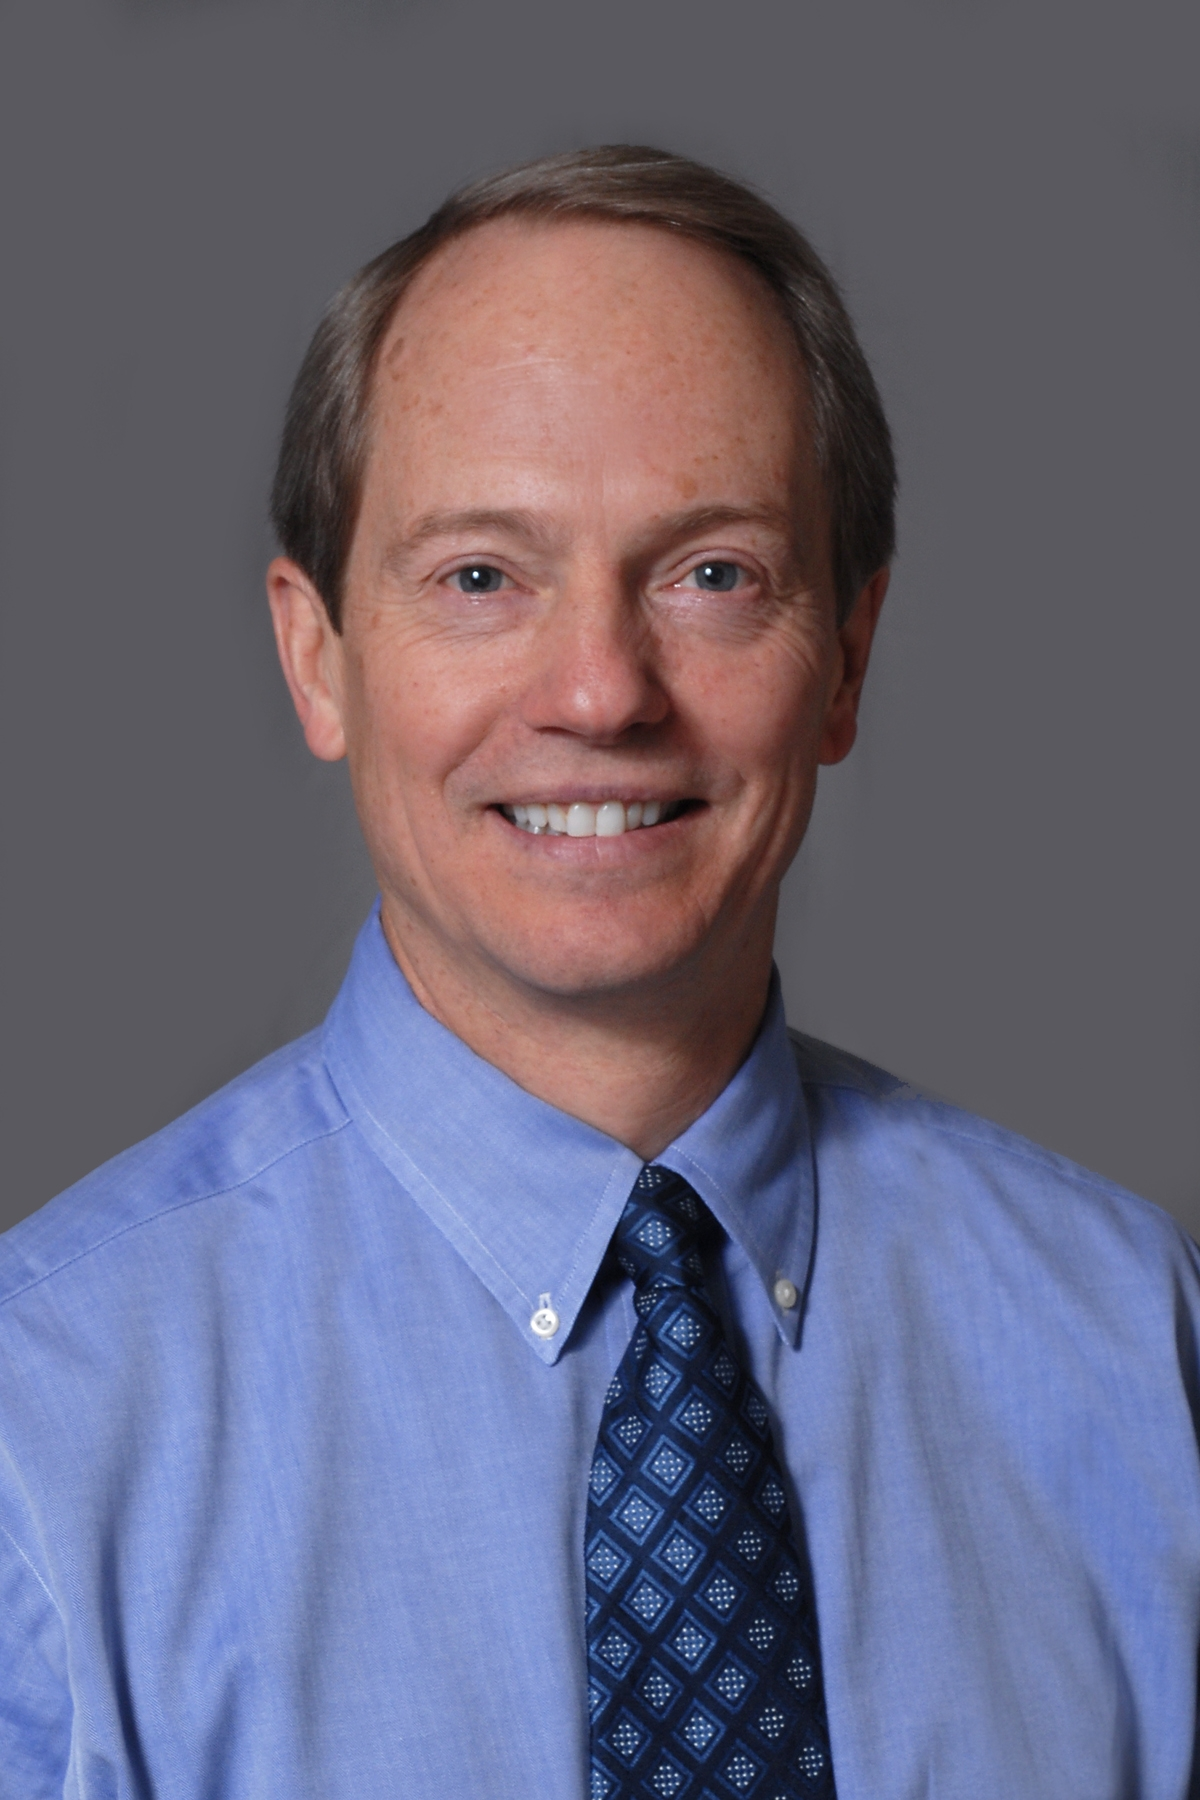 Gregory P Downey, MD